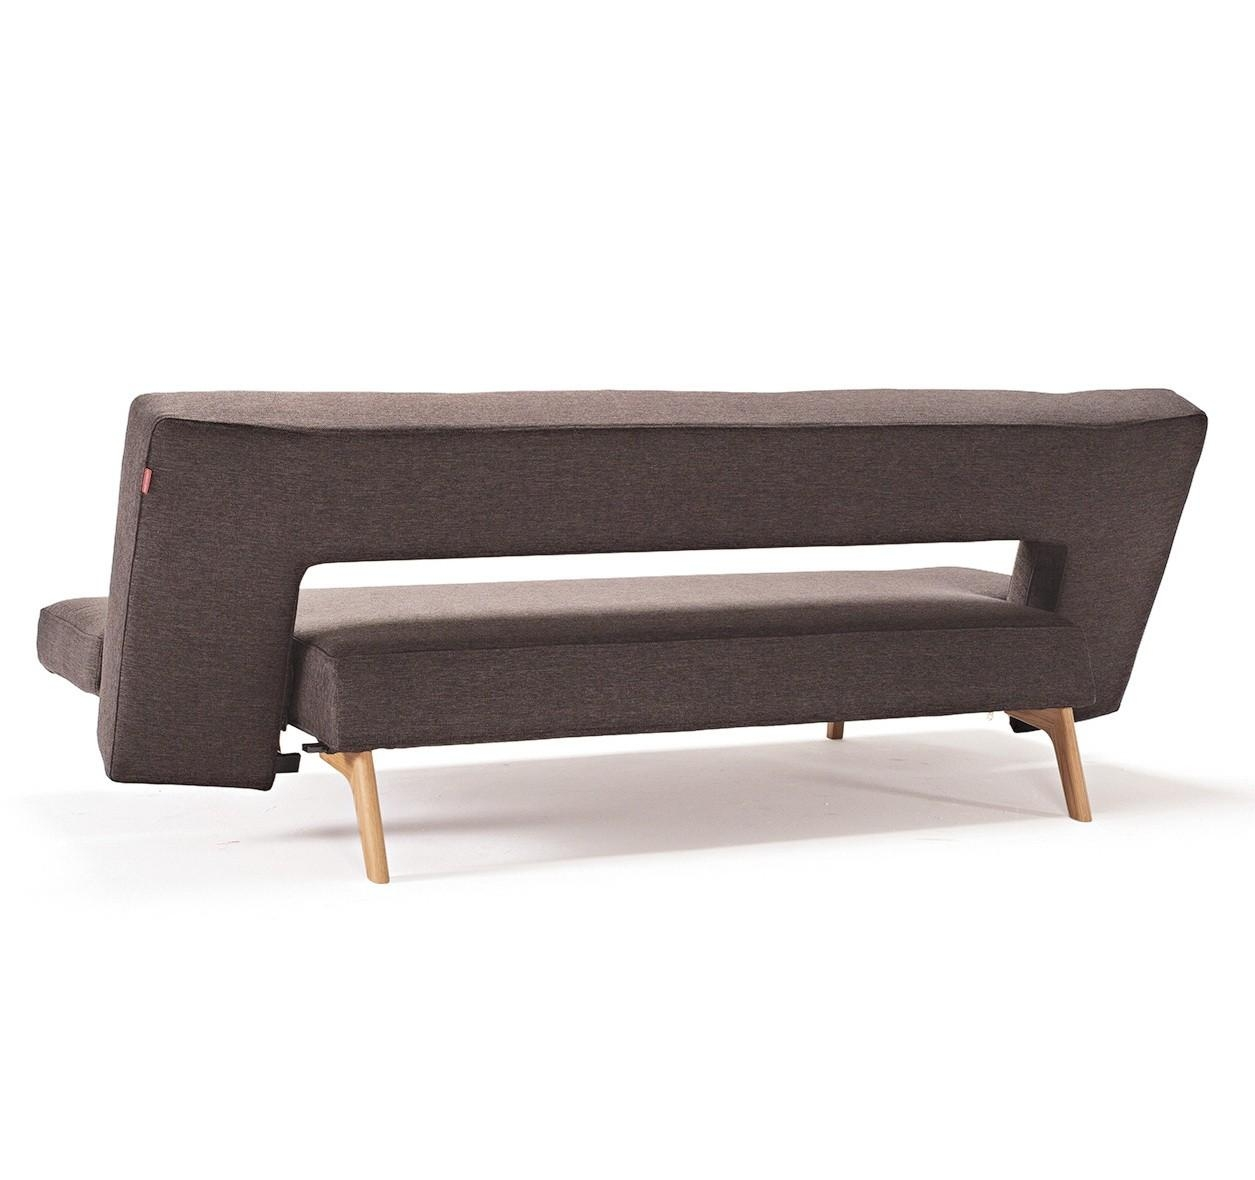 Puzzle Modern Sofa Bedinnovation With Wooden Legs In Fabric Intended For Wood Legs Sofas (View 19 of 23)